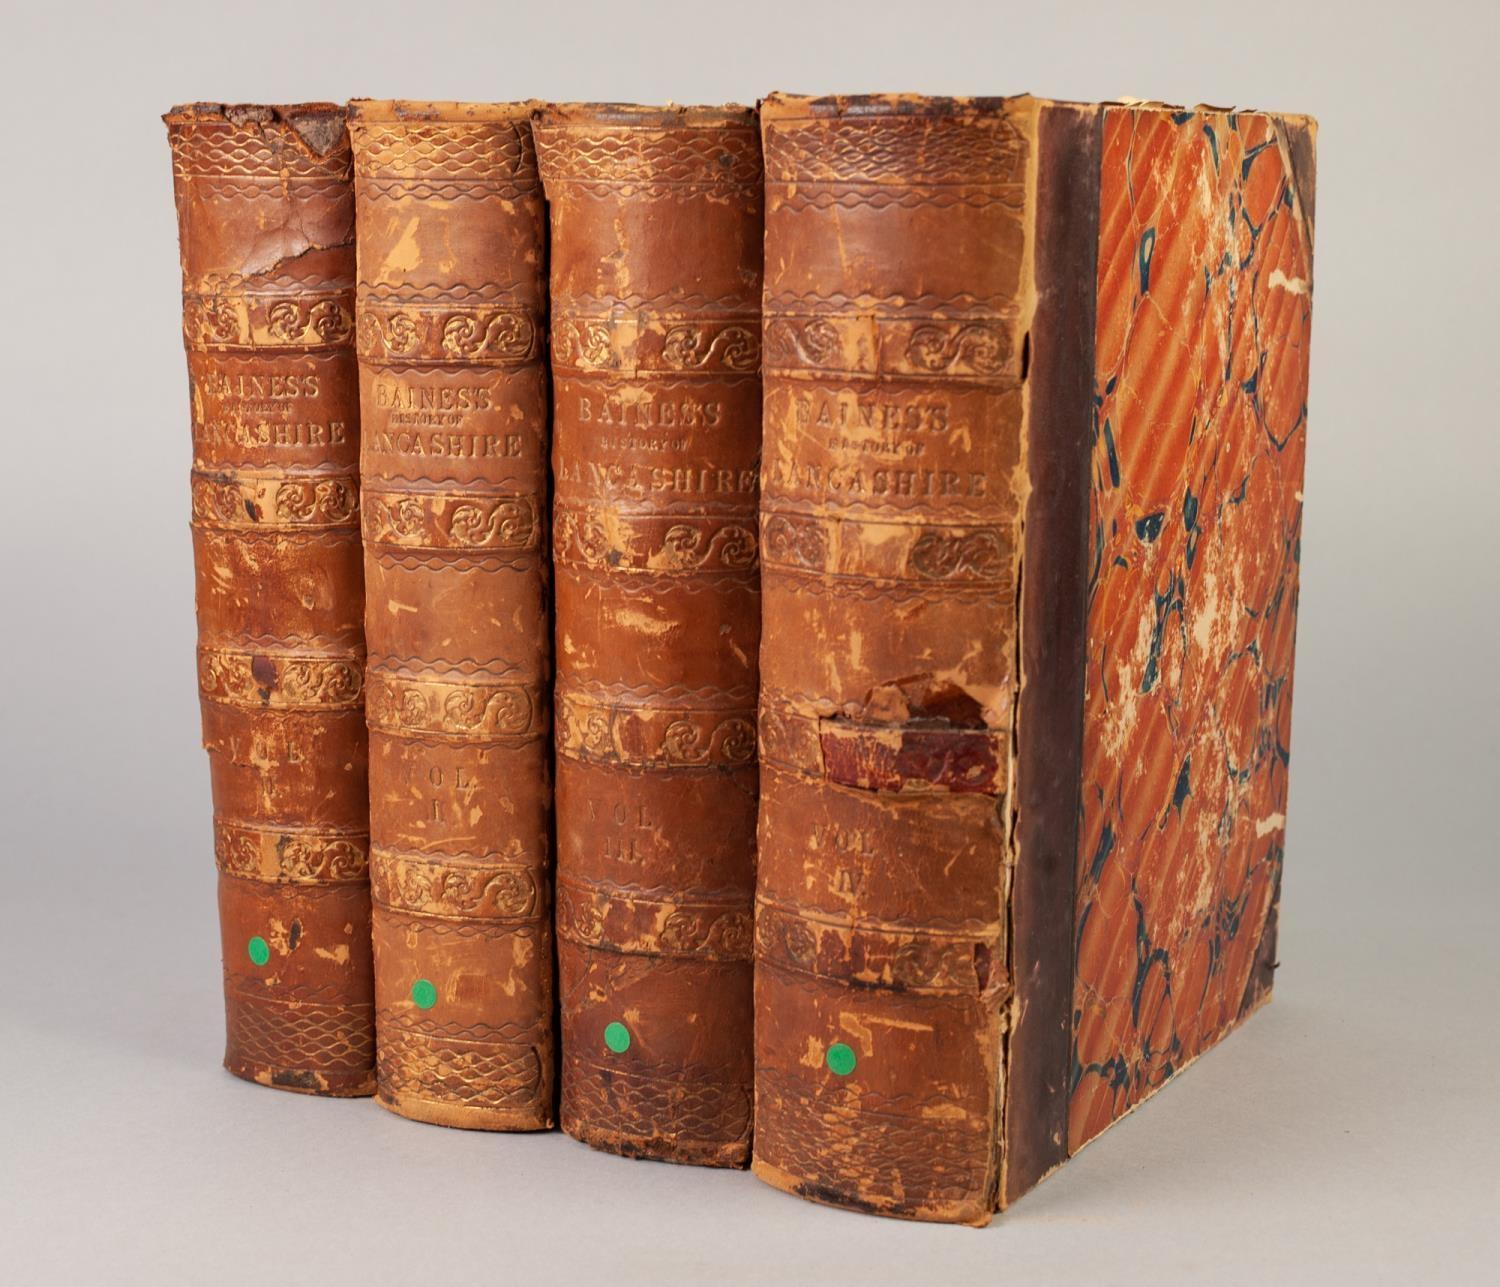 Lot 18 - E BAINES, HISTORY OF LANCASHIRE COUNTY PALATINE AND DUCHY OF LANCASTER, 4 volumes, published